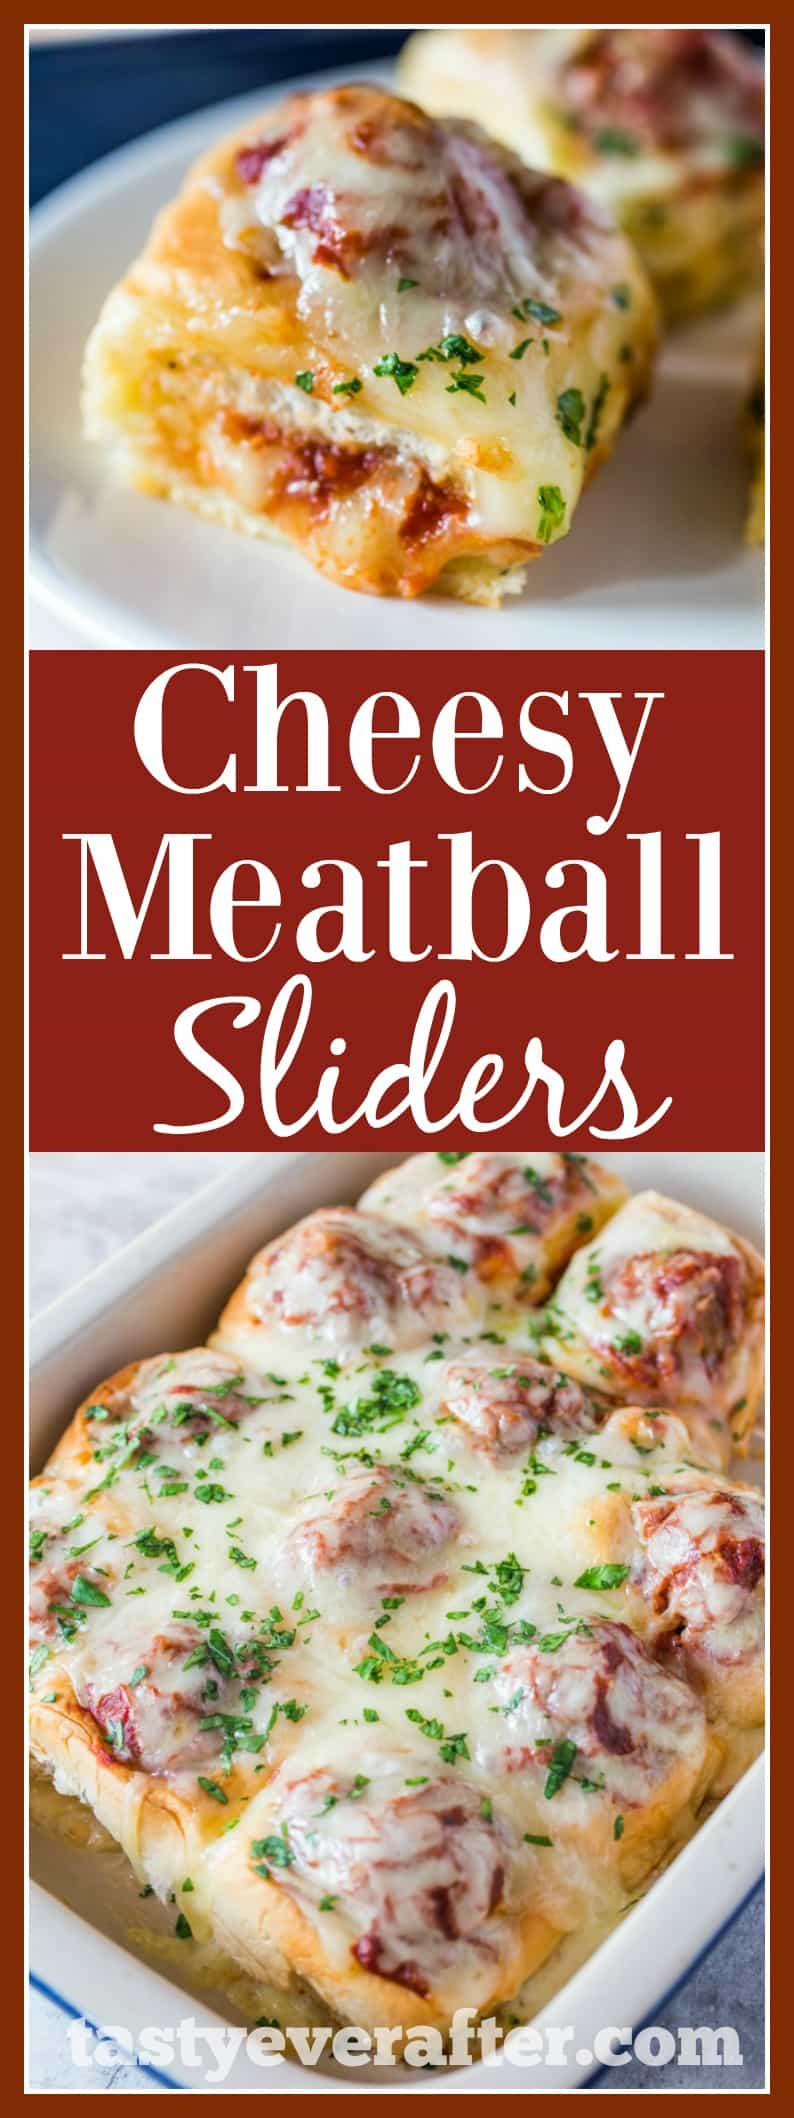 CheesyMeatballSlidersPIN - Cheesy Meatball Sliders Recipe